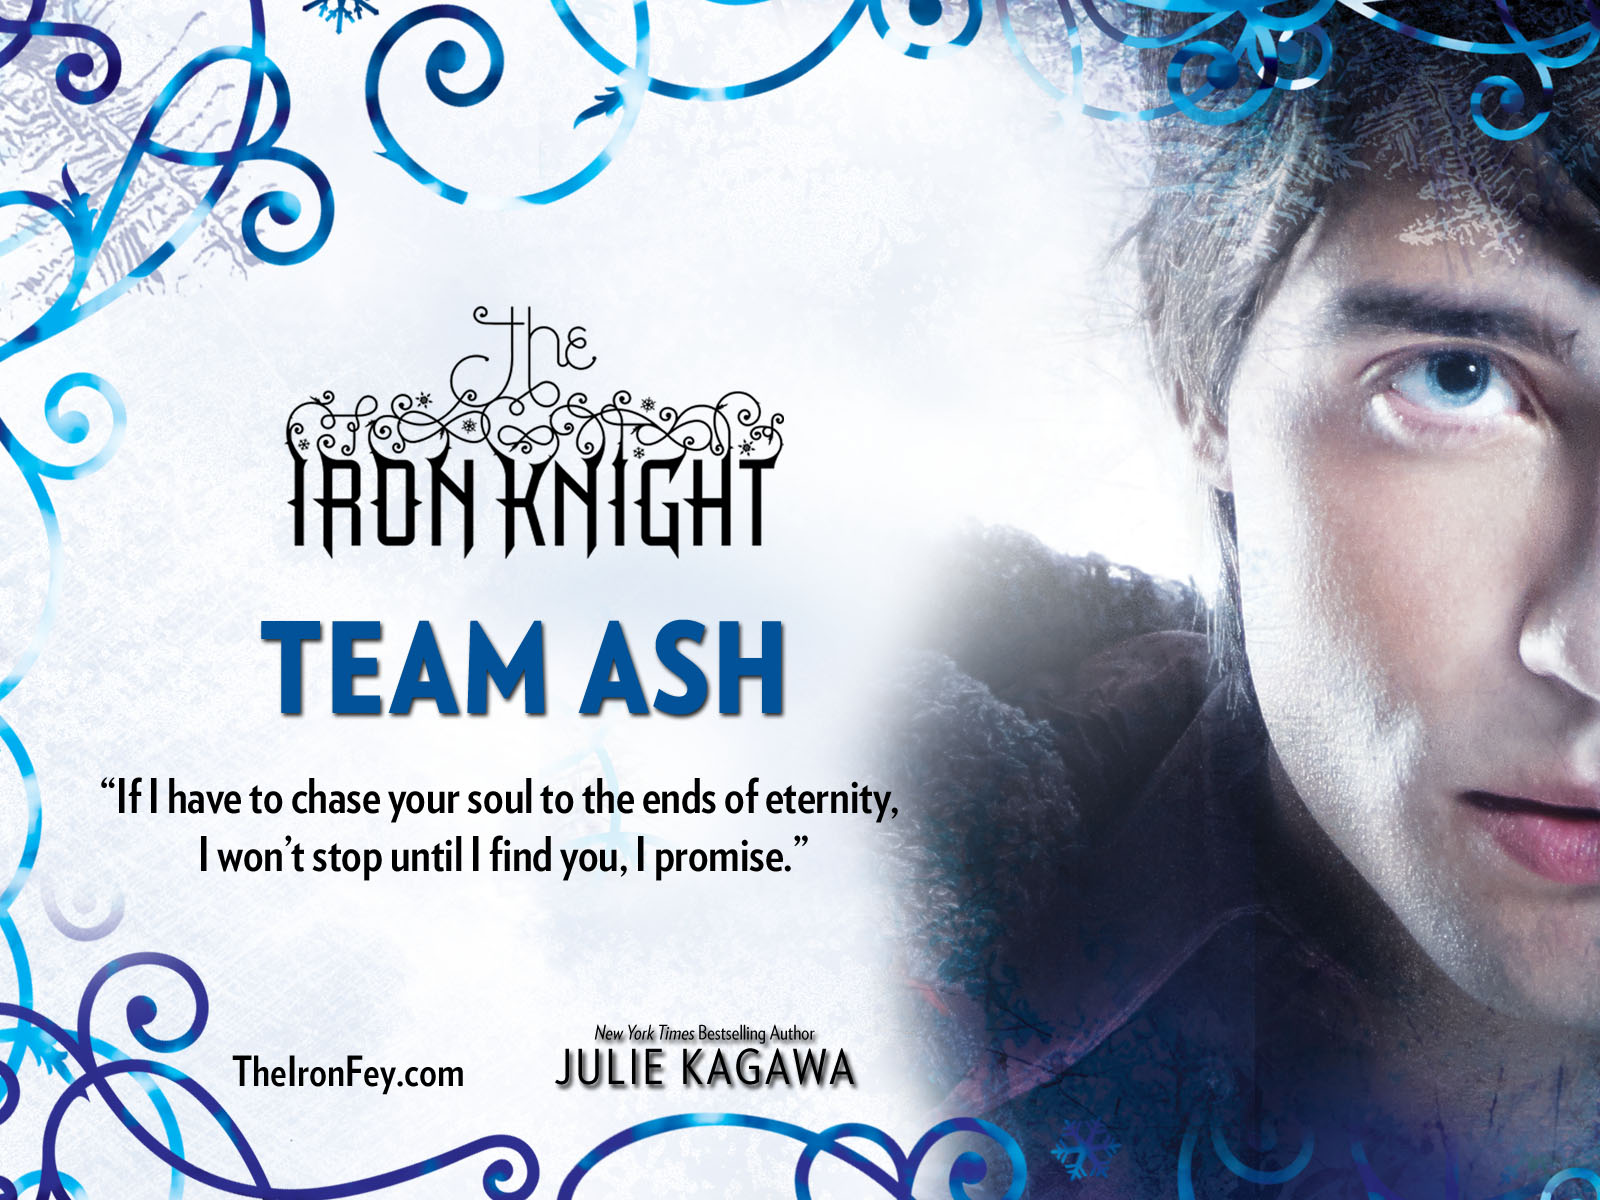 Julie Kagawa  Iron Knight arc contest  A day with Ash  or Puck